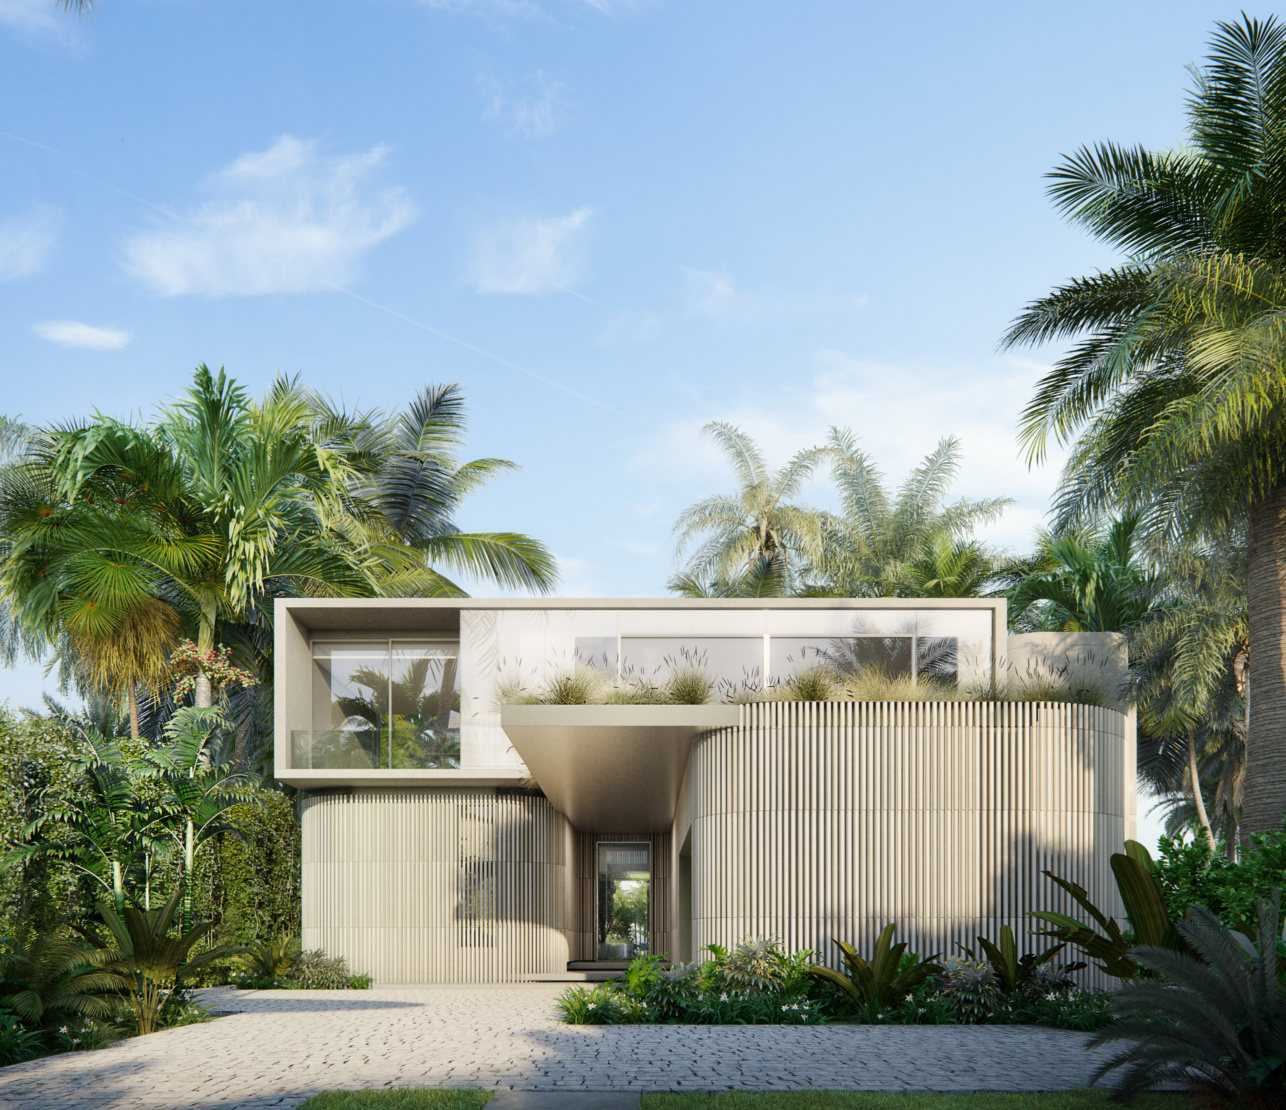 This Sunset Island residence is a current collaboration between KoDA and Studio RODA. Image by Azeez Bakare Studios.